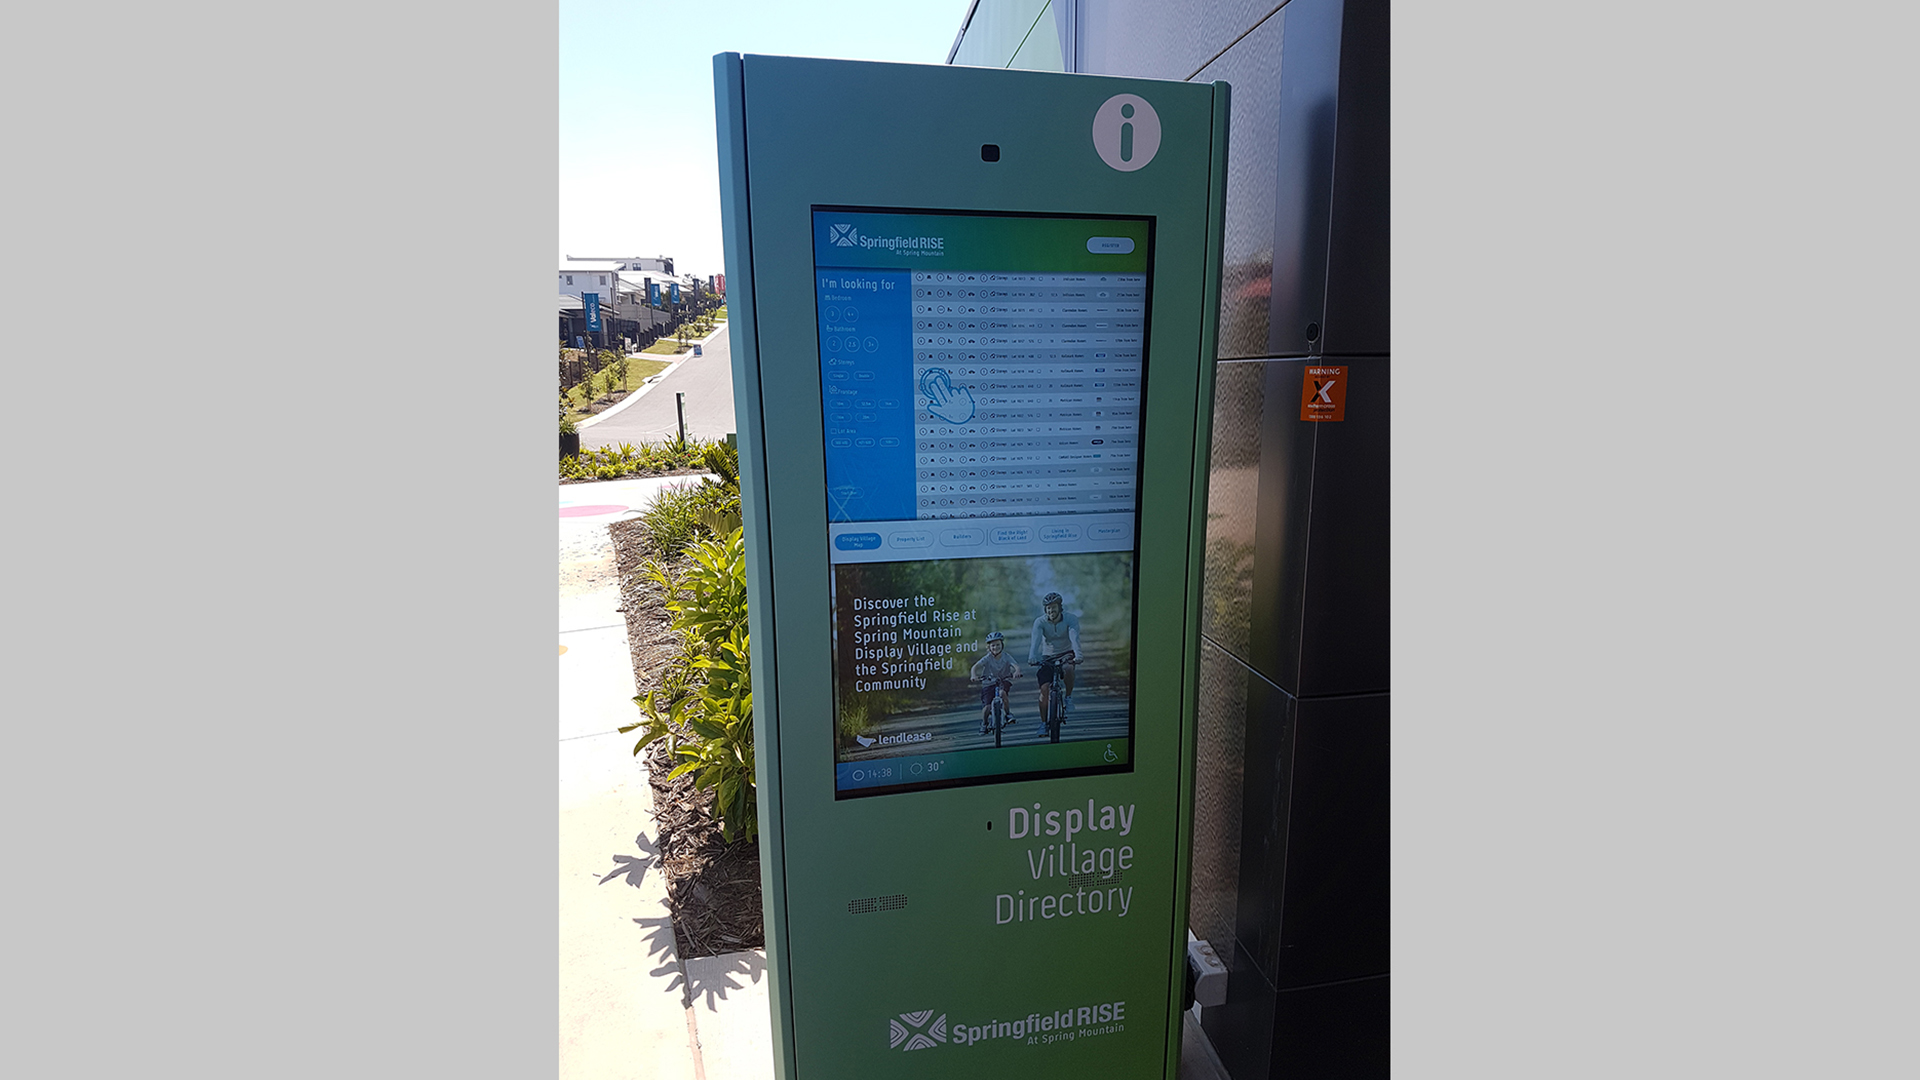 Outdoor Wayfinging Kiosk touchscreen interface at Springfield Rise in Queensland Australia